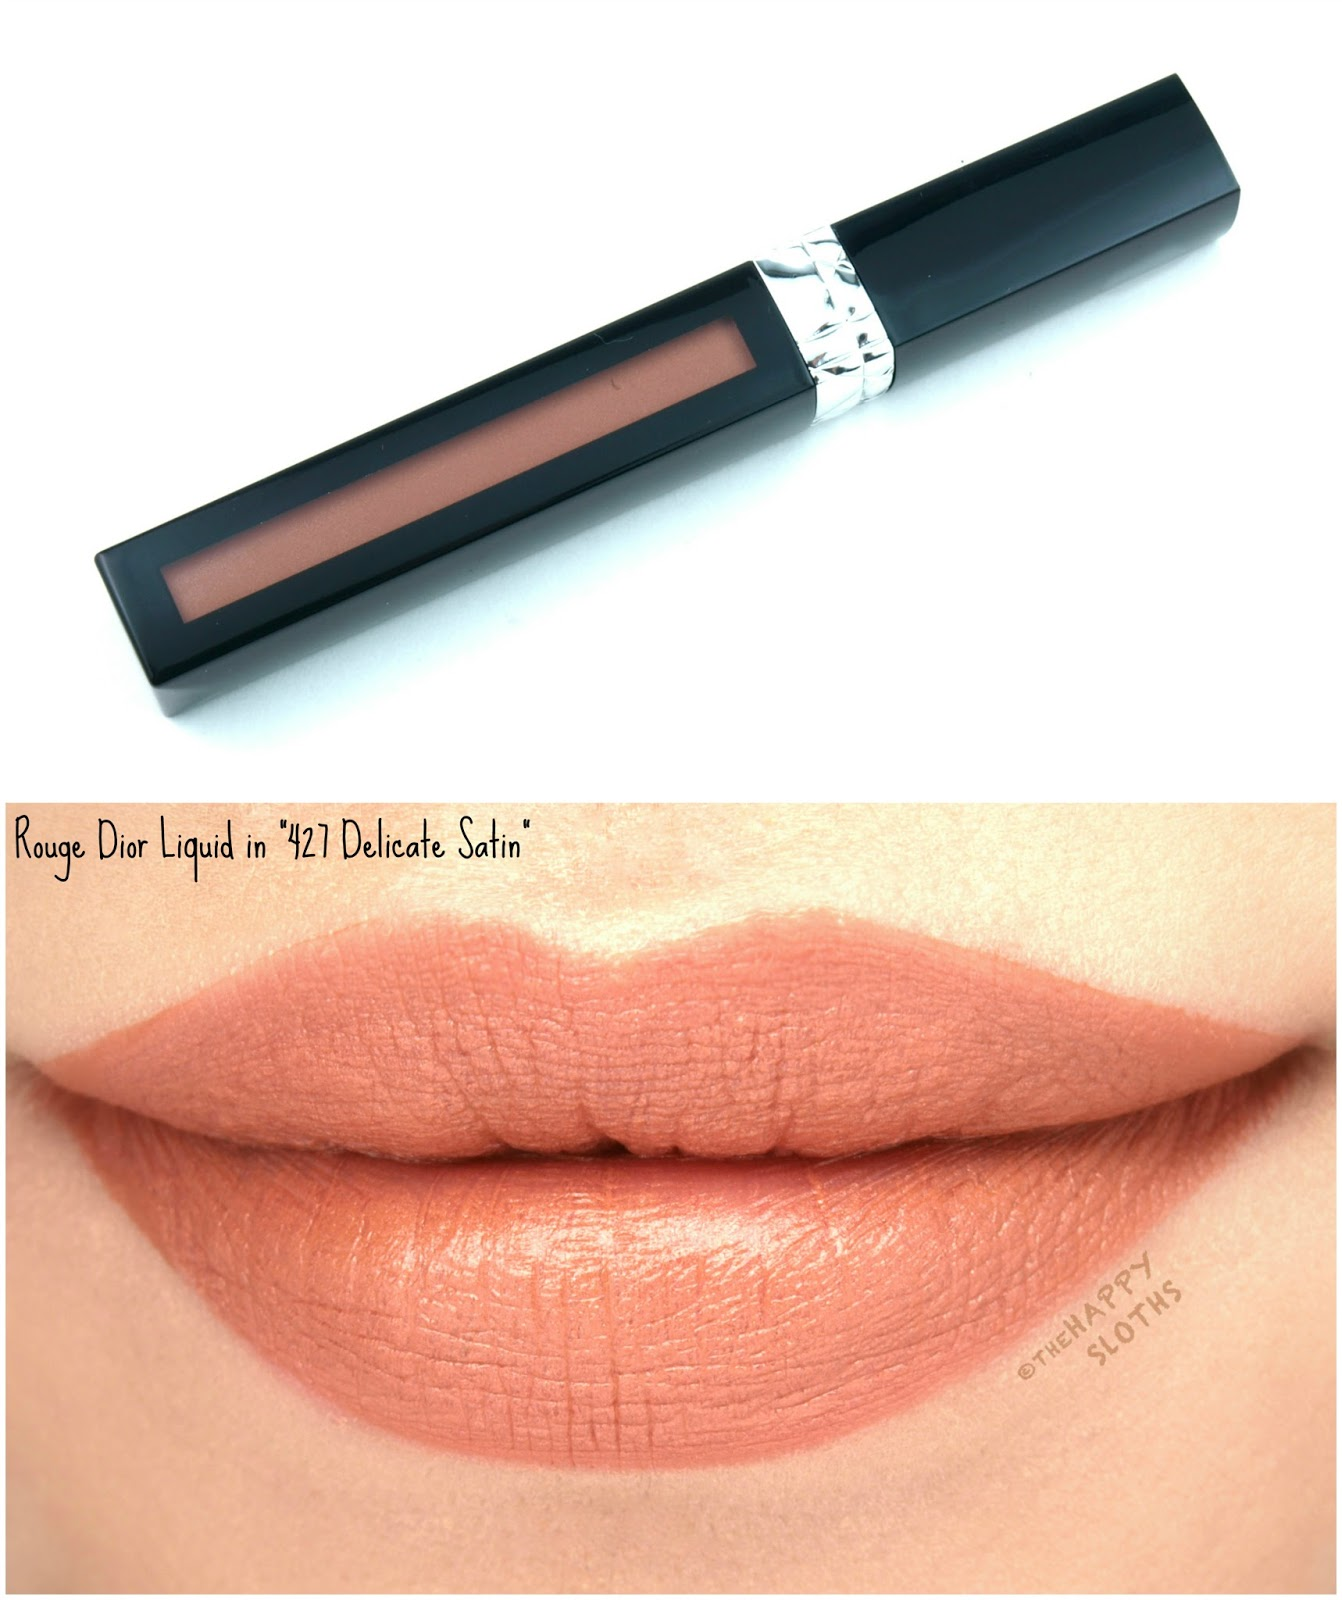 """Dior Rouge Dior Liquid Lip Stain in """"427 Delicate Satin"""": Review and Swatches"""